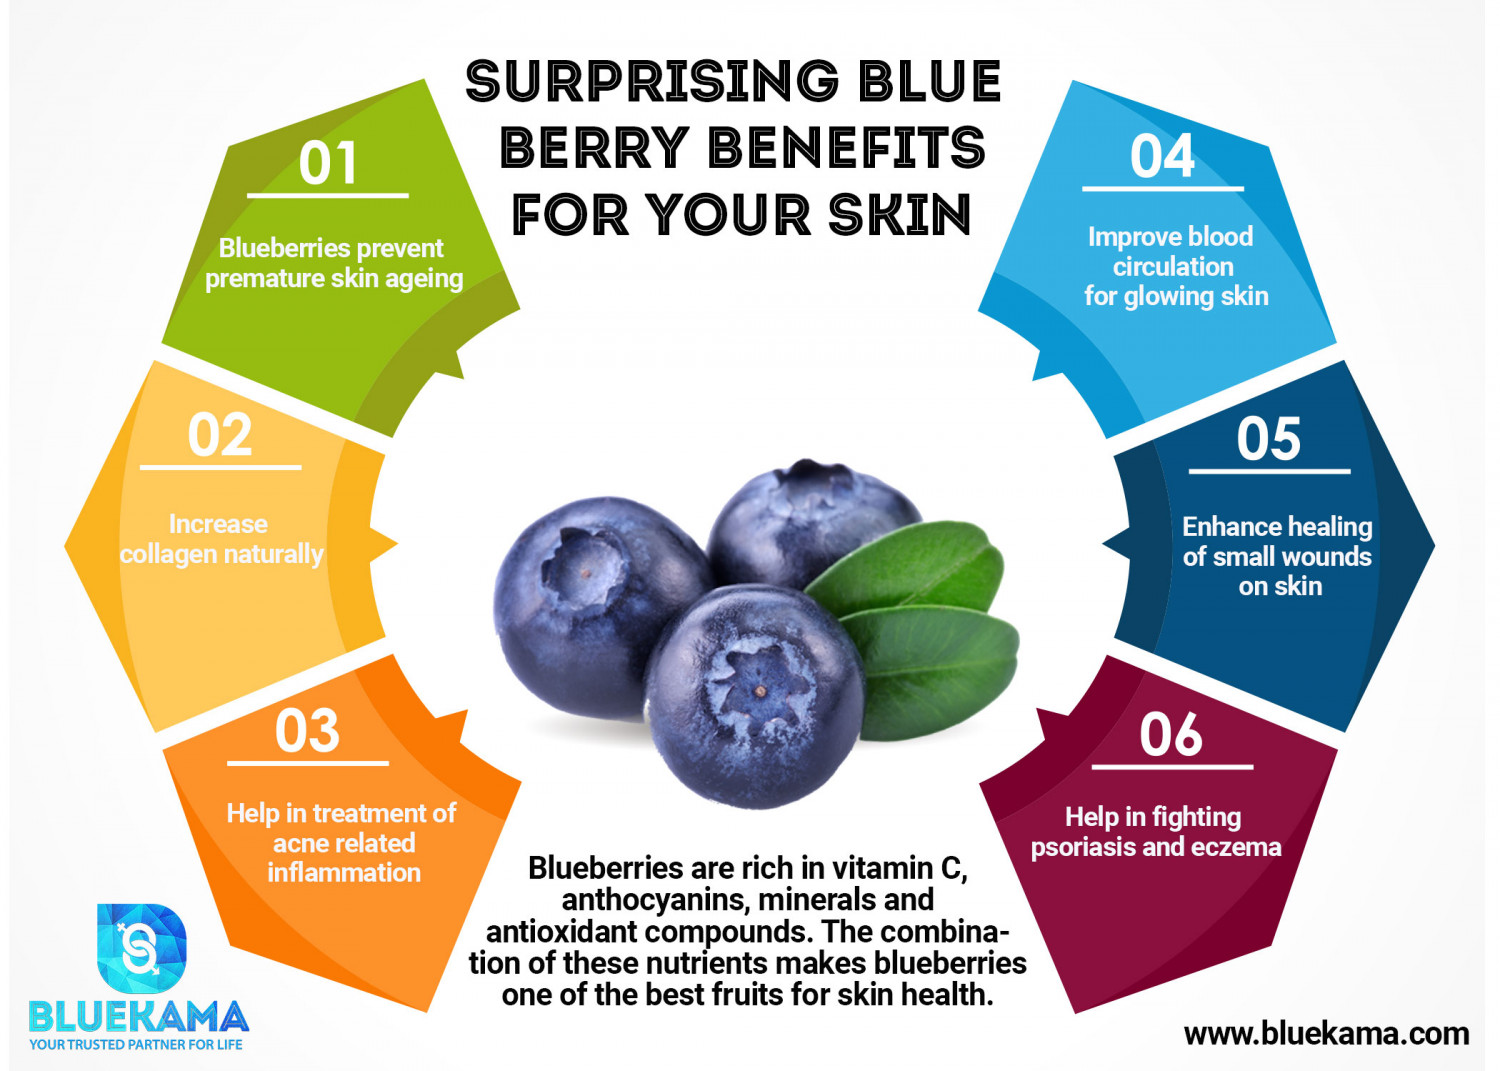 Surprising Blueberry Benefits for Your Skin Infographic